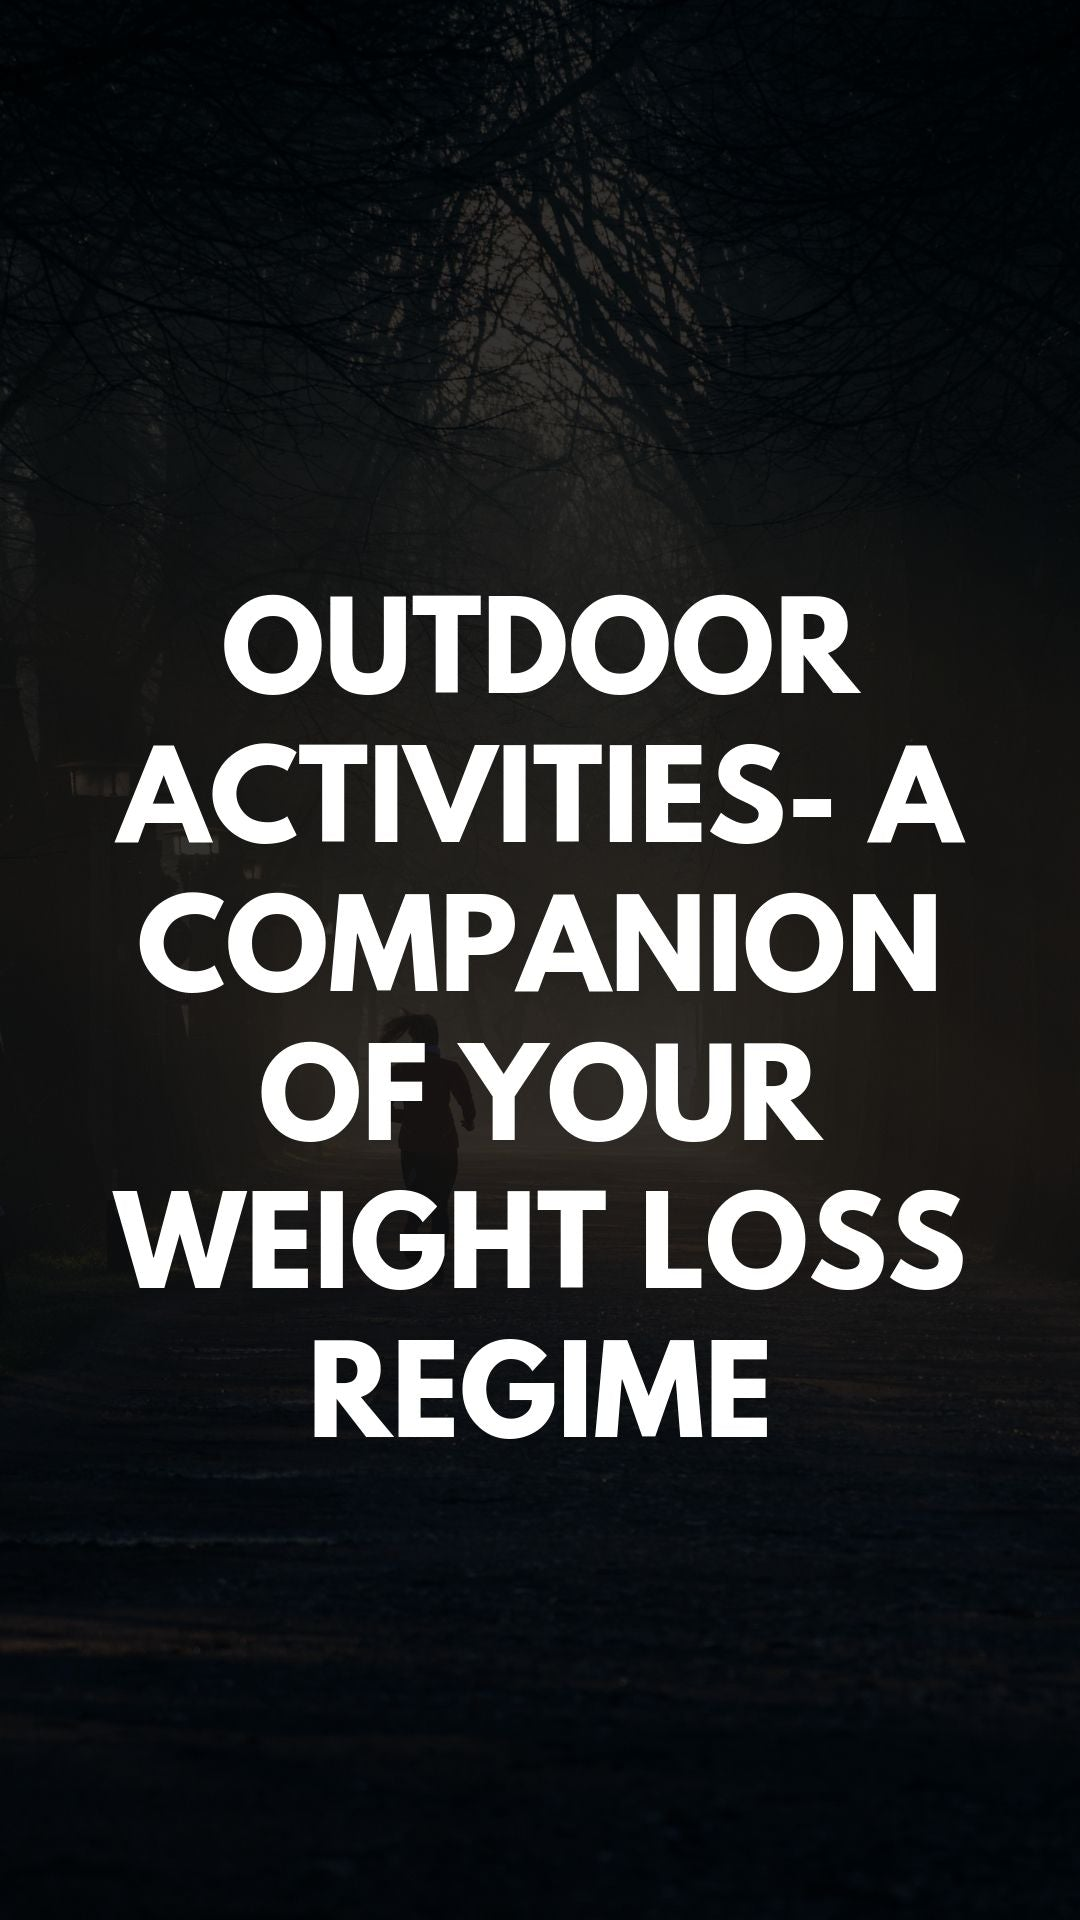 Outdoor Activities- A Companion Of Your Weight Loss Regime